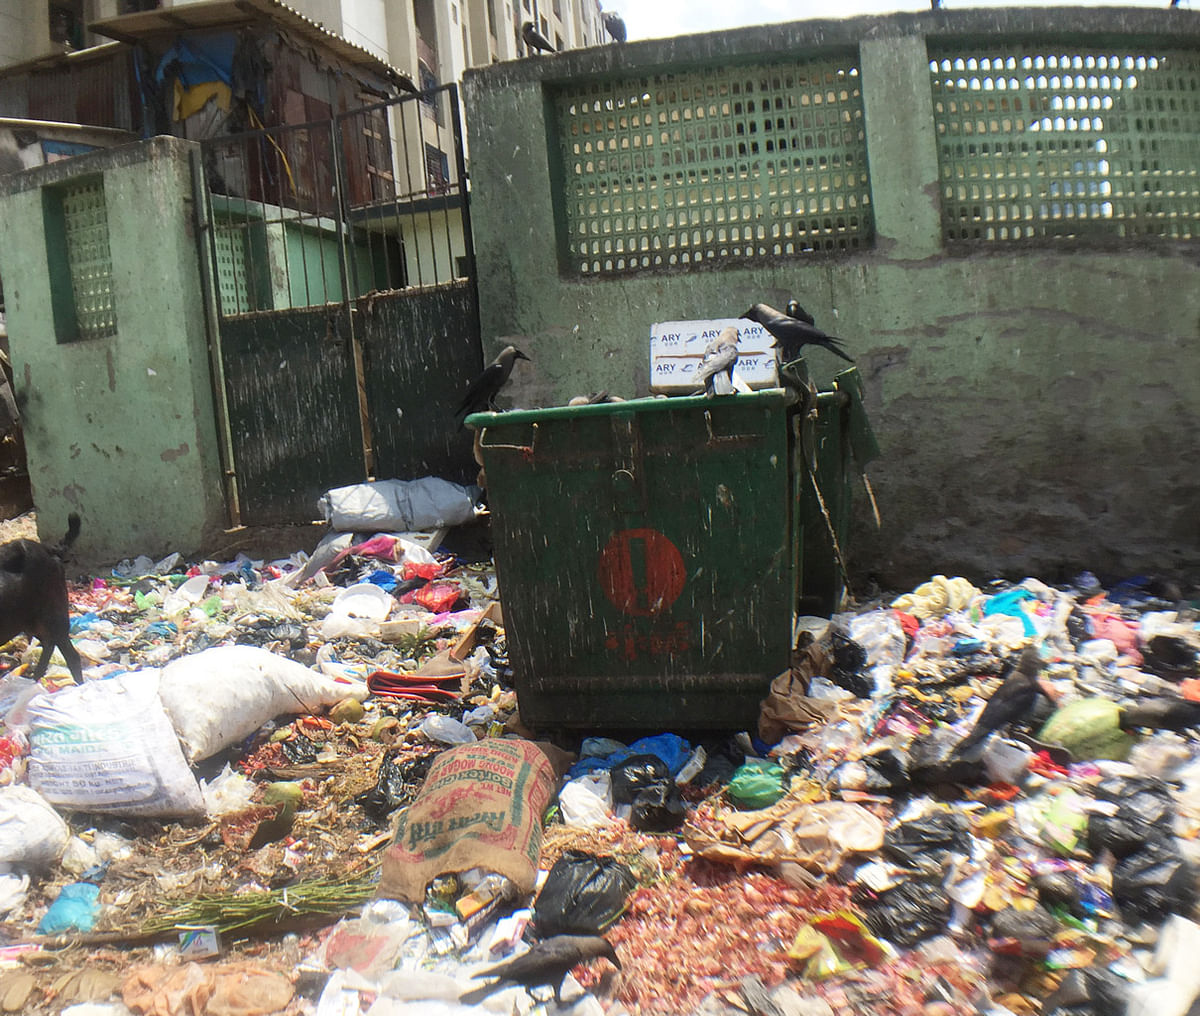 Garbage spilled around two trash cans outside a 'redeveloped' slum building in Nargis Nagar, Bandra (East), Mumbai. (Photo: <b>The Quint</b>/Pallavi Prasad)